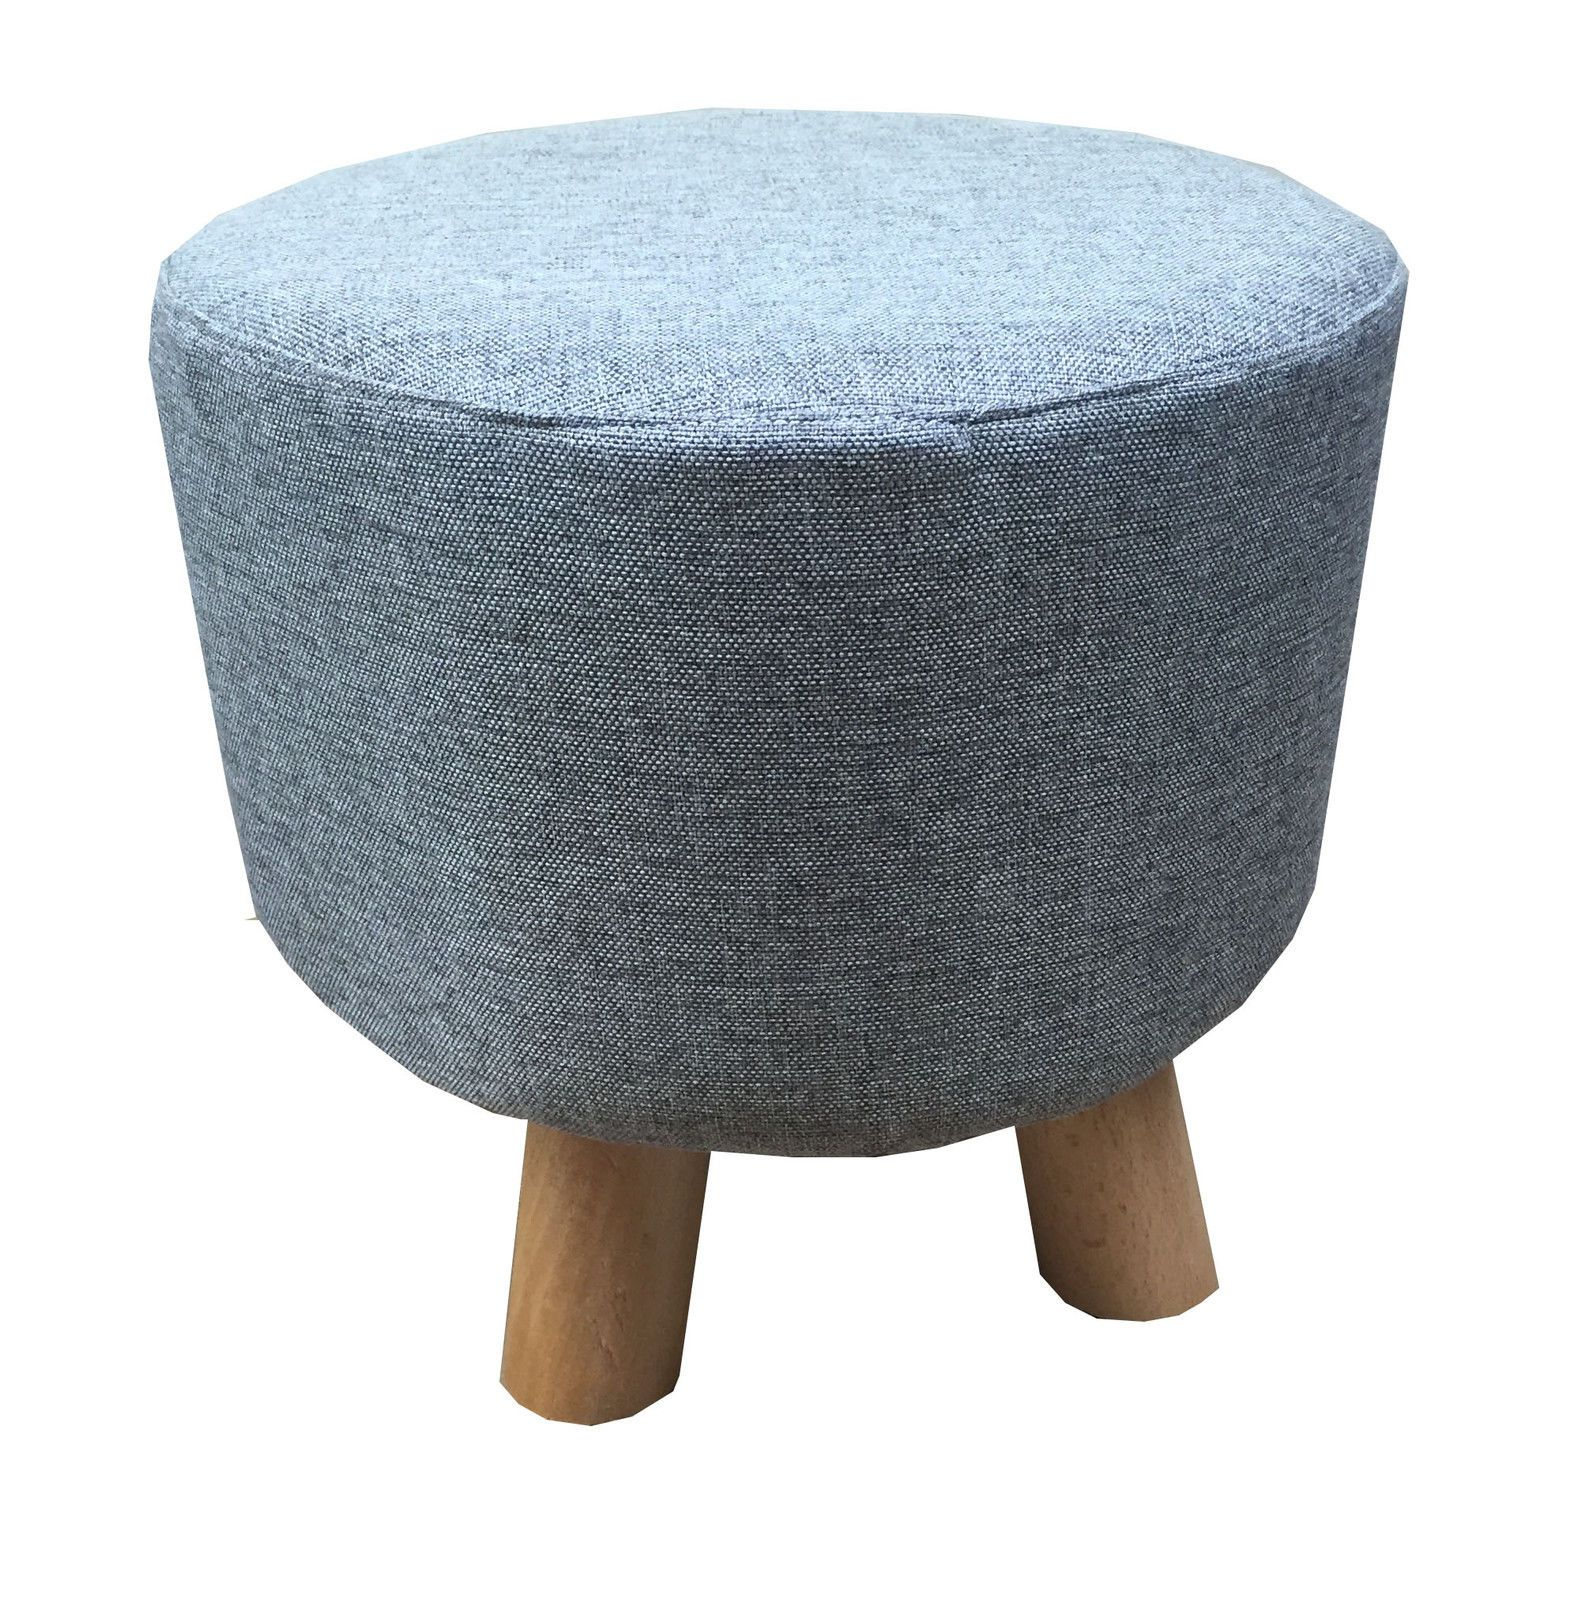 Details About Oak Upholstered Round Footstool Ottoman Pouffe